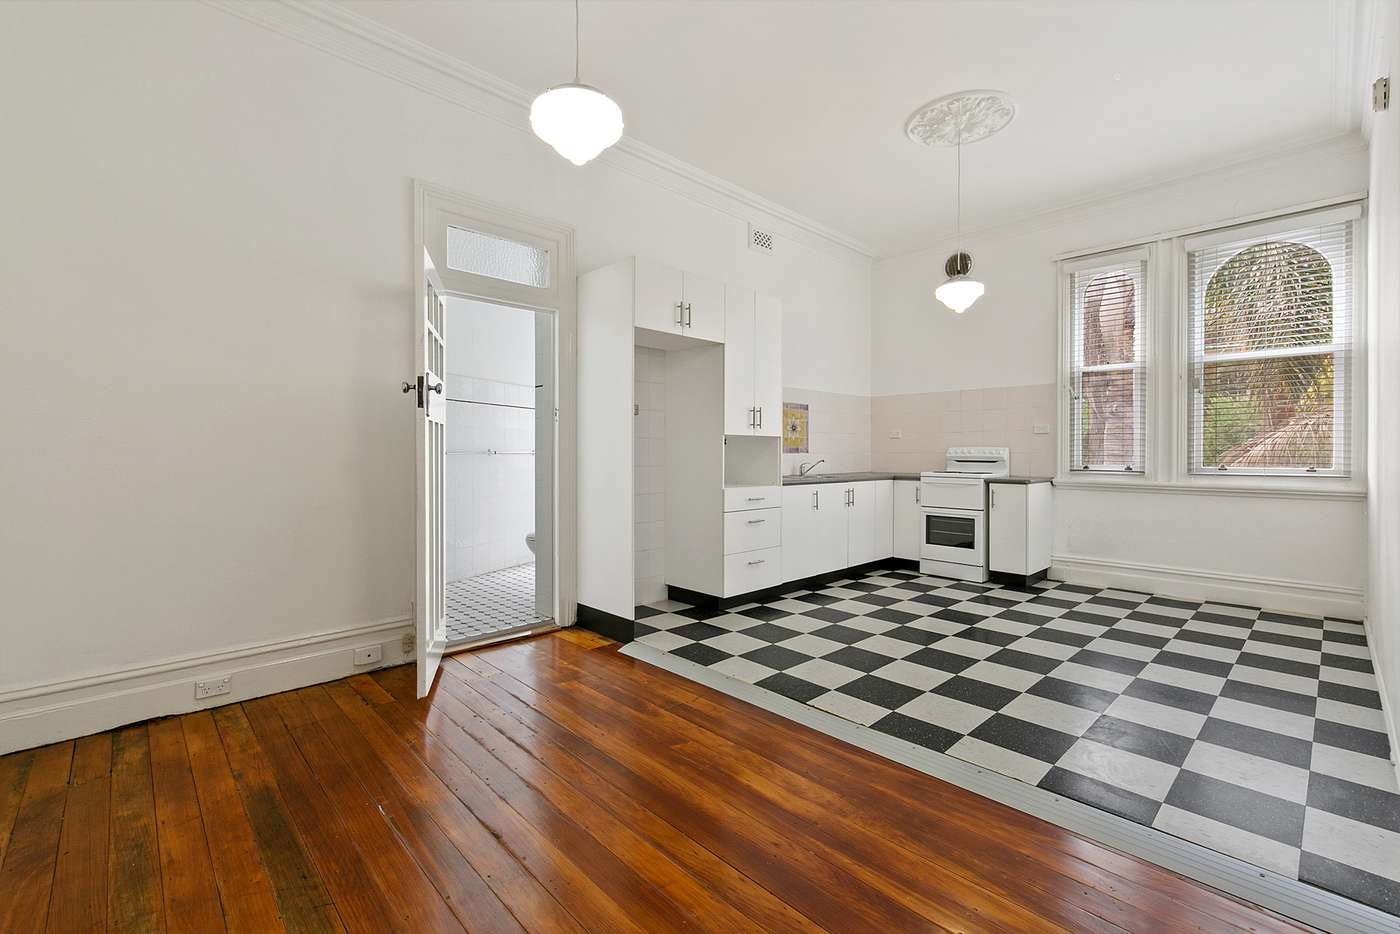 Main view of Homely apartment listing, 9/29 Croydon Street, Petersham NSW 2049